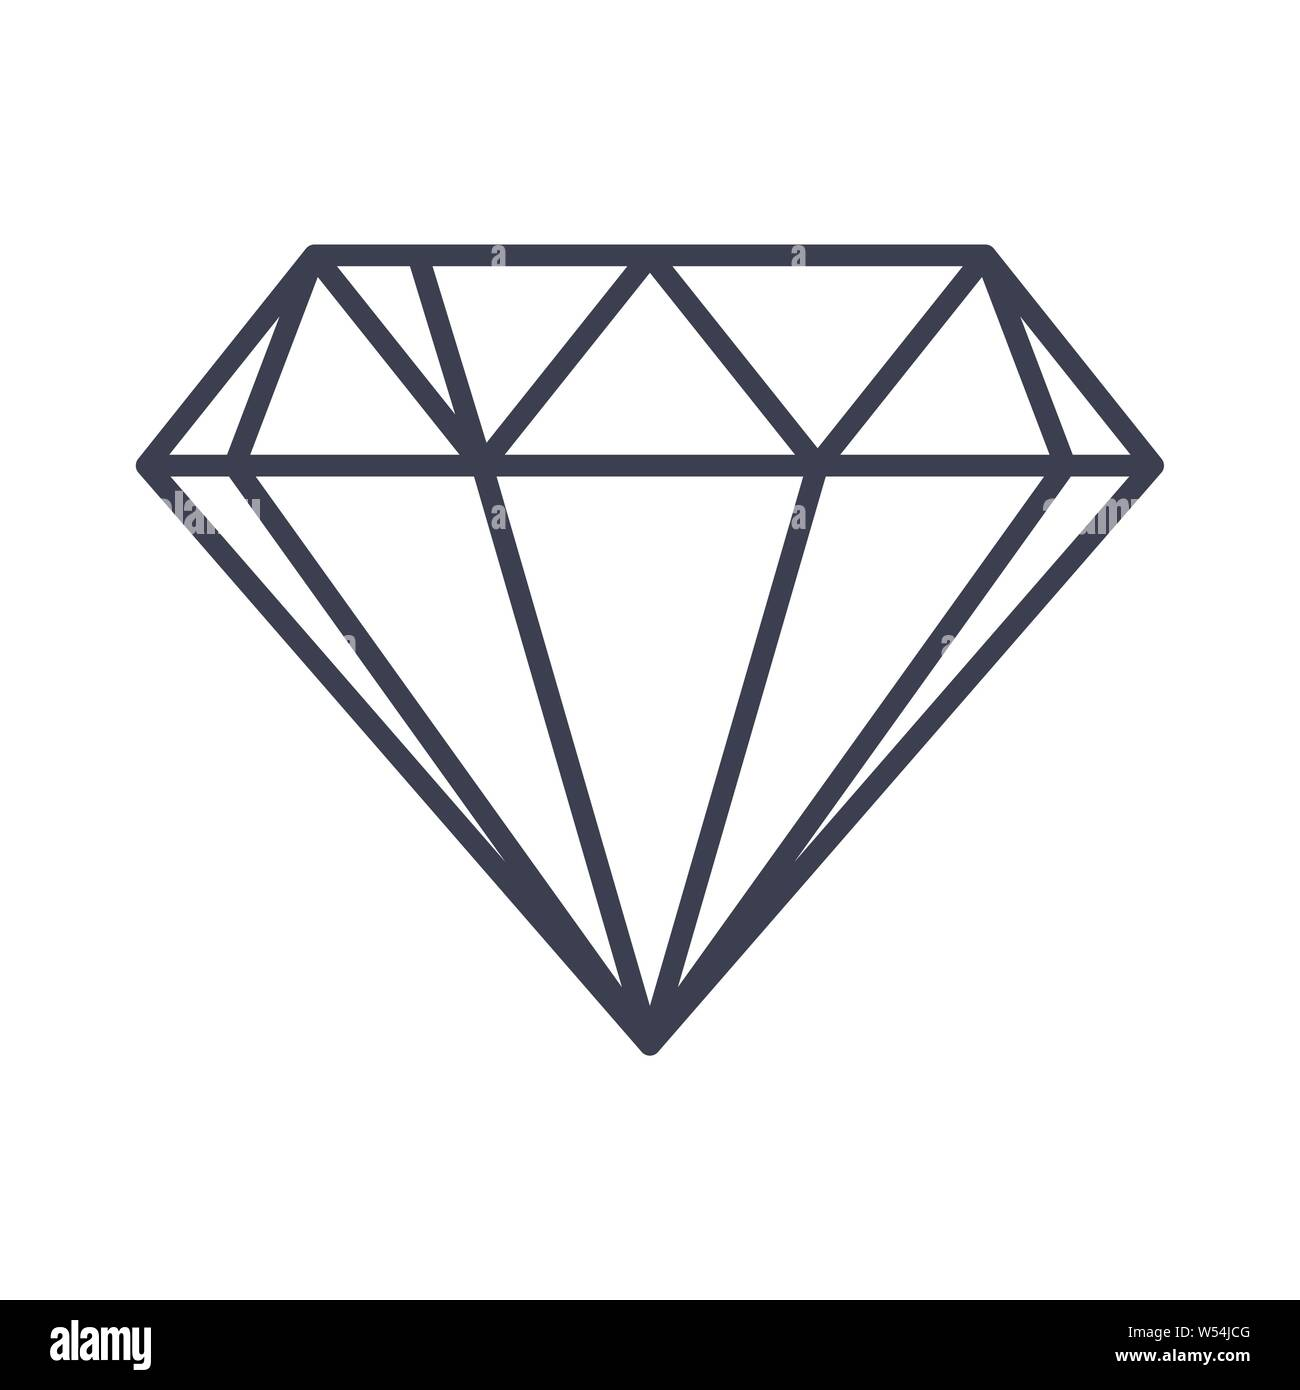 Diamond Outline Icon Flat Vector Style Illustration Stock Vector Image Art Alamy Download 249 diamond outline free vectors. https www alamy com diamond outline icon flat vector style illustration image261331072 html